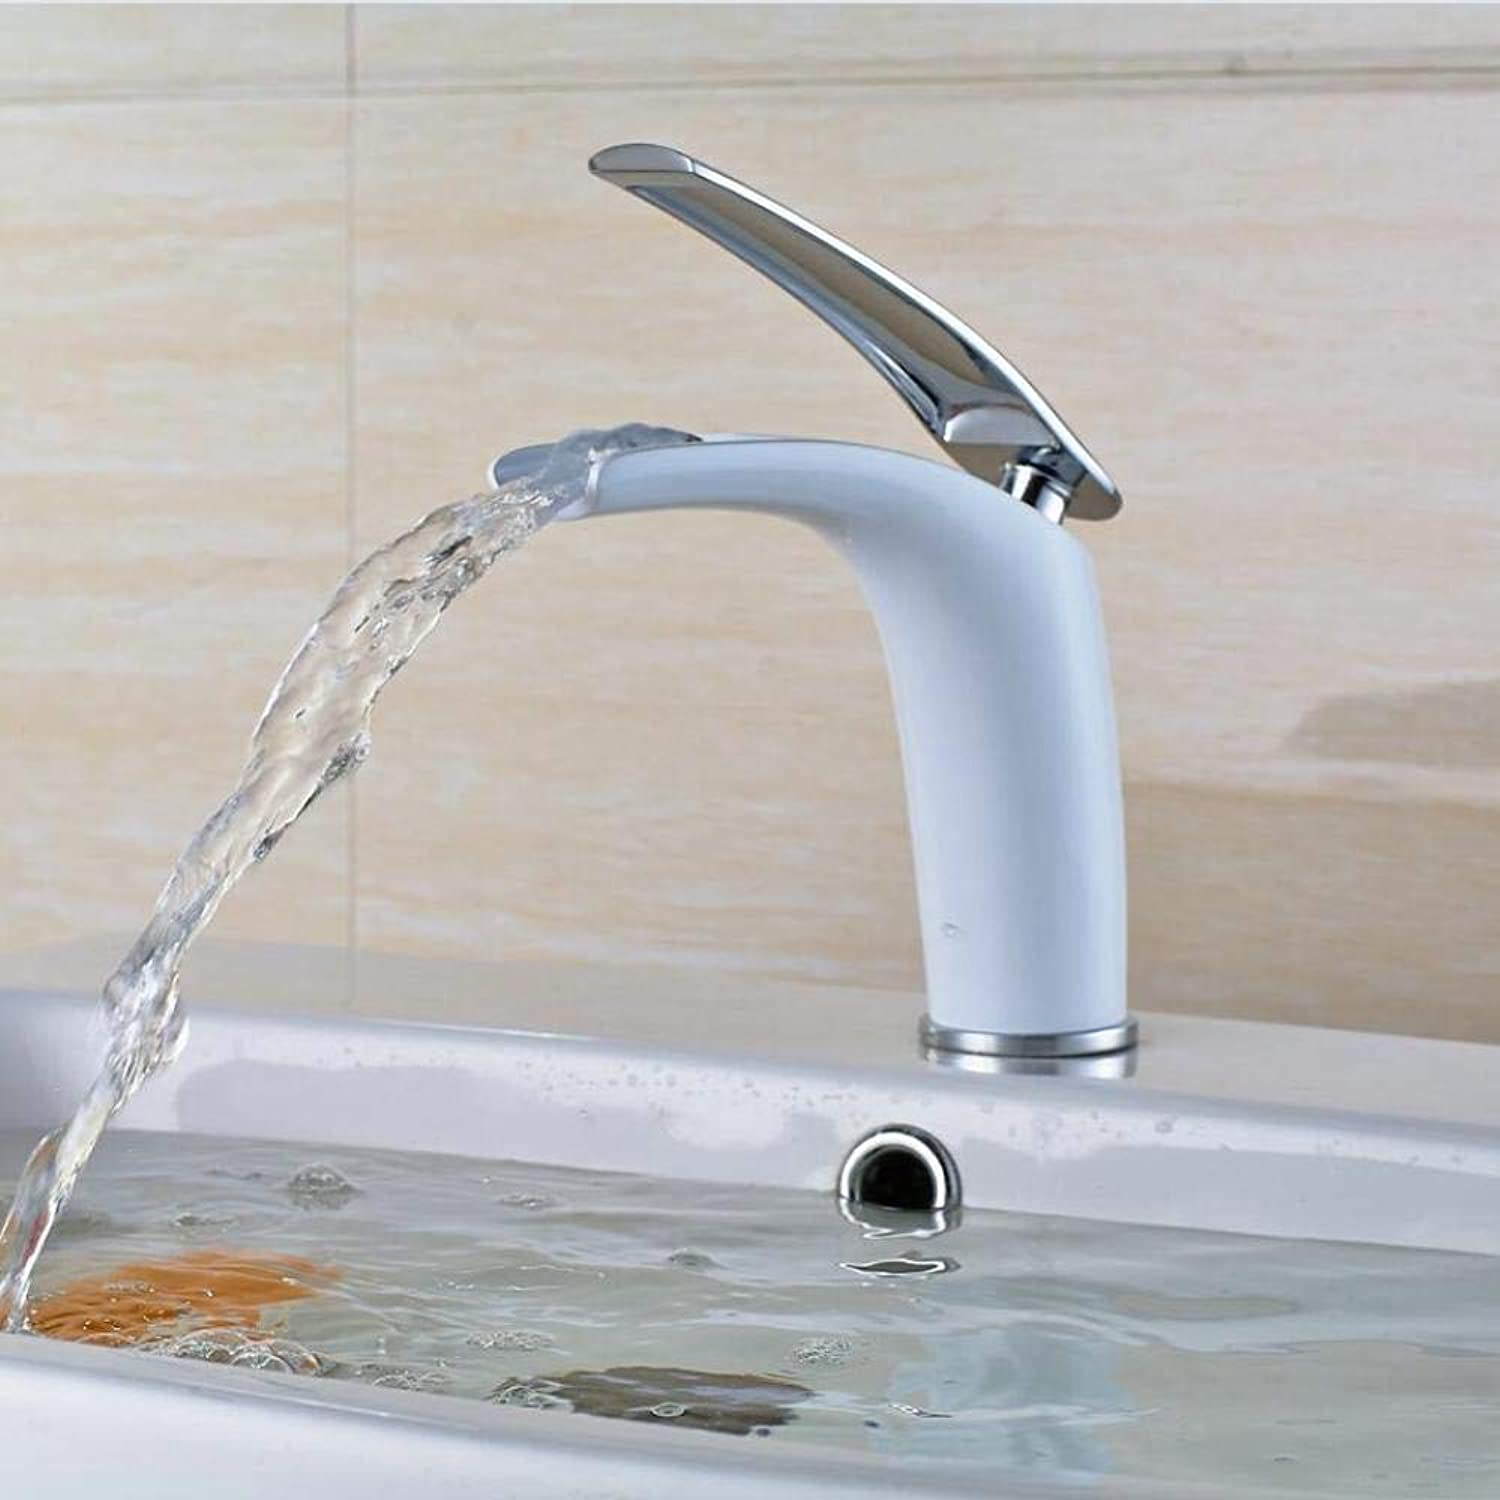 Bathroom Sink Taps Bathroom Faucet hot and Cold White Brass Basin Faucet Waterfall Faucet Sink Faucet Single Handle Water tap